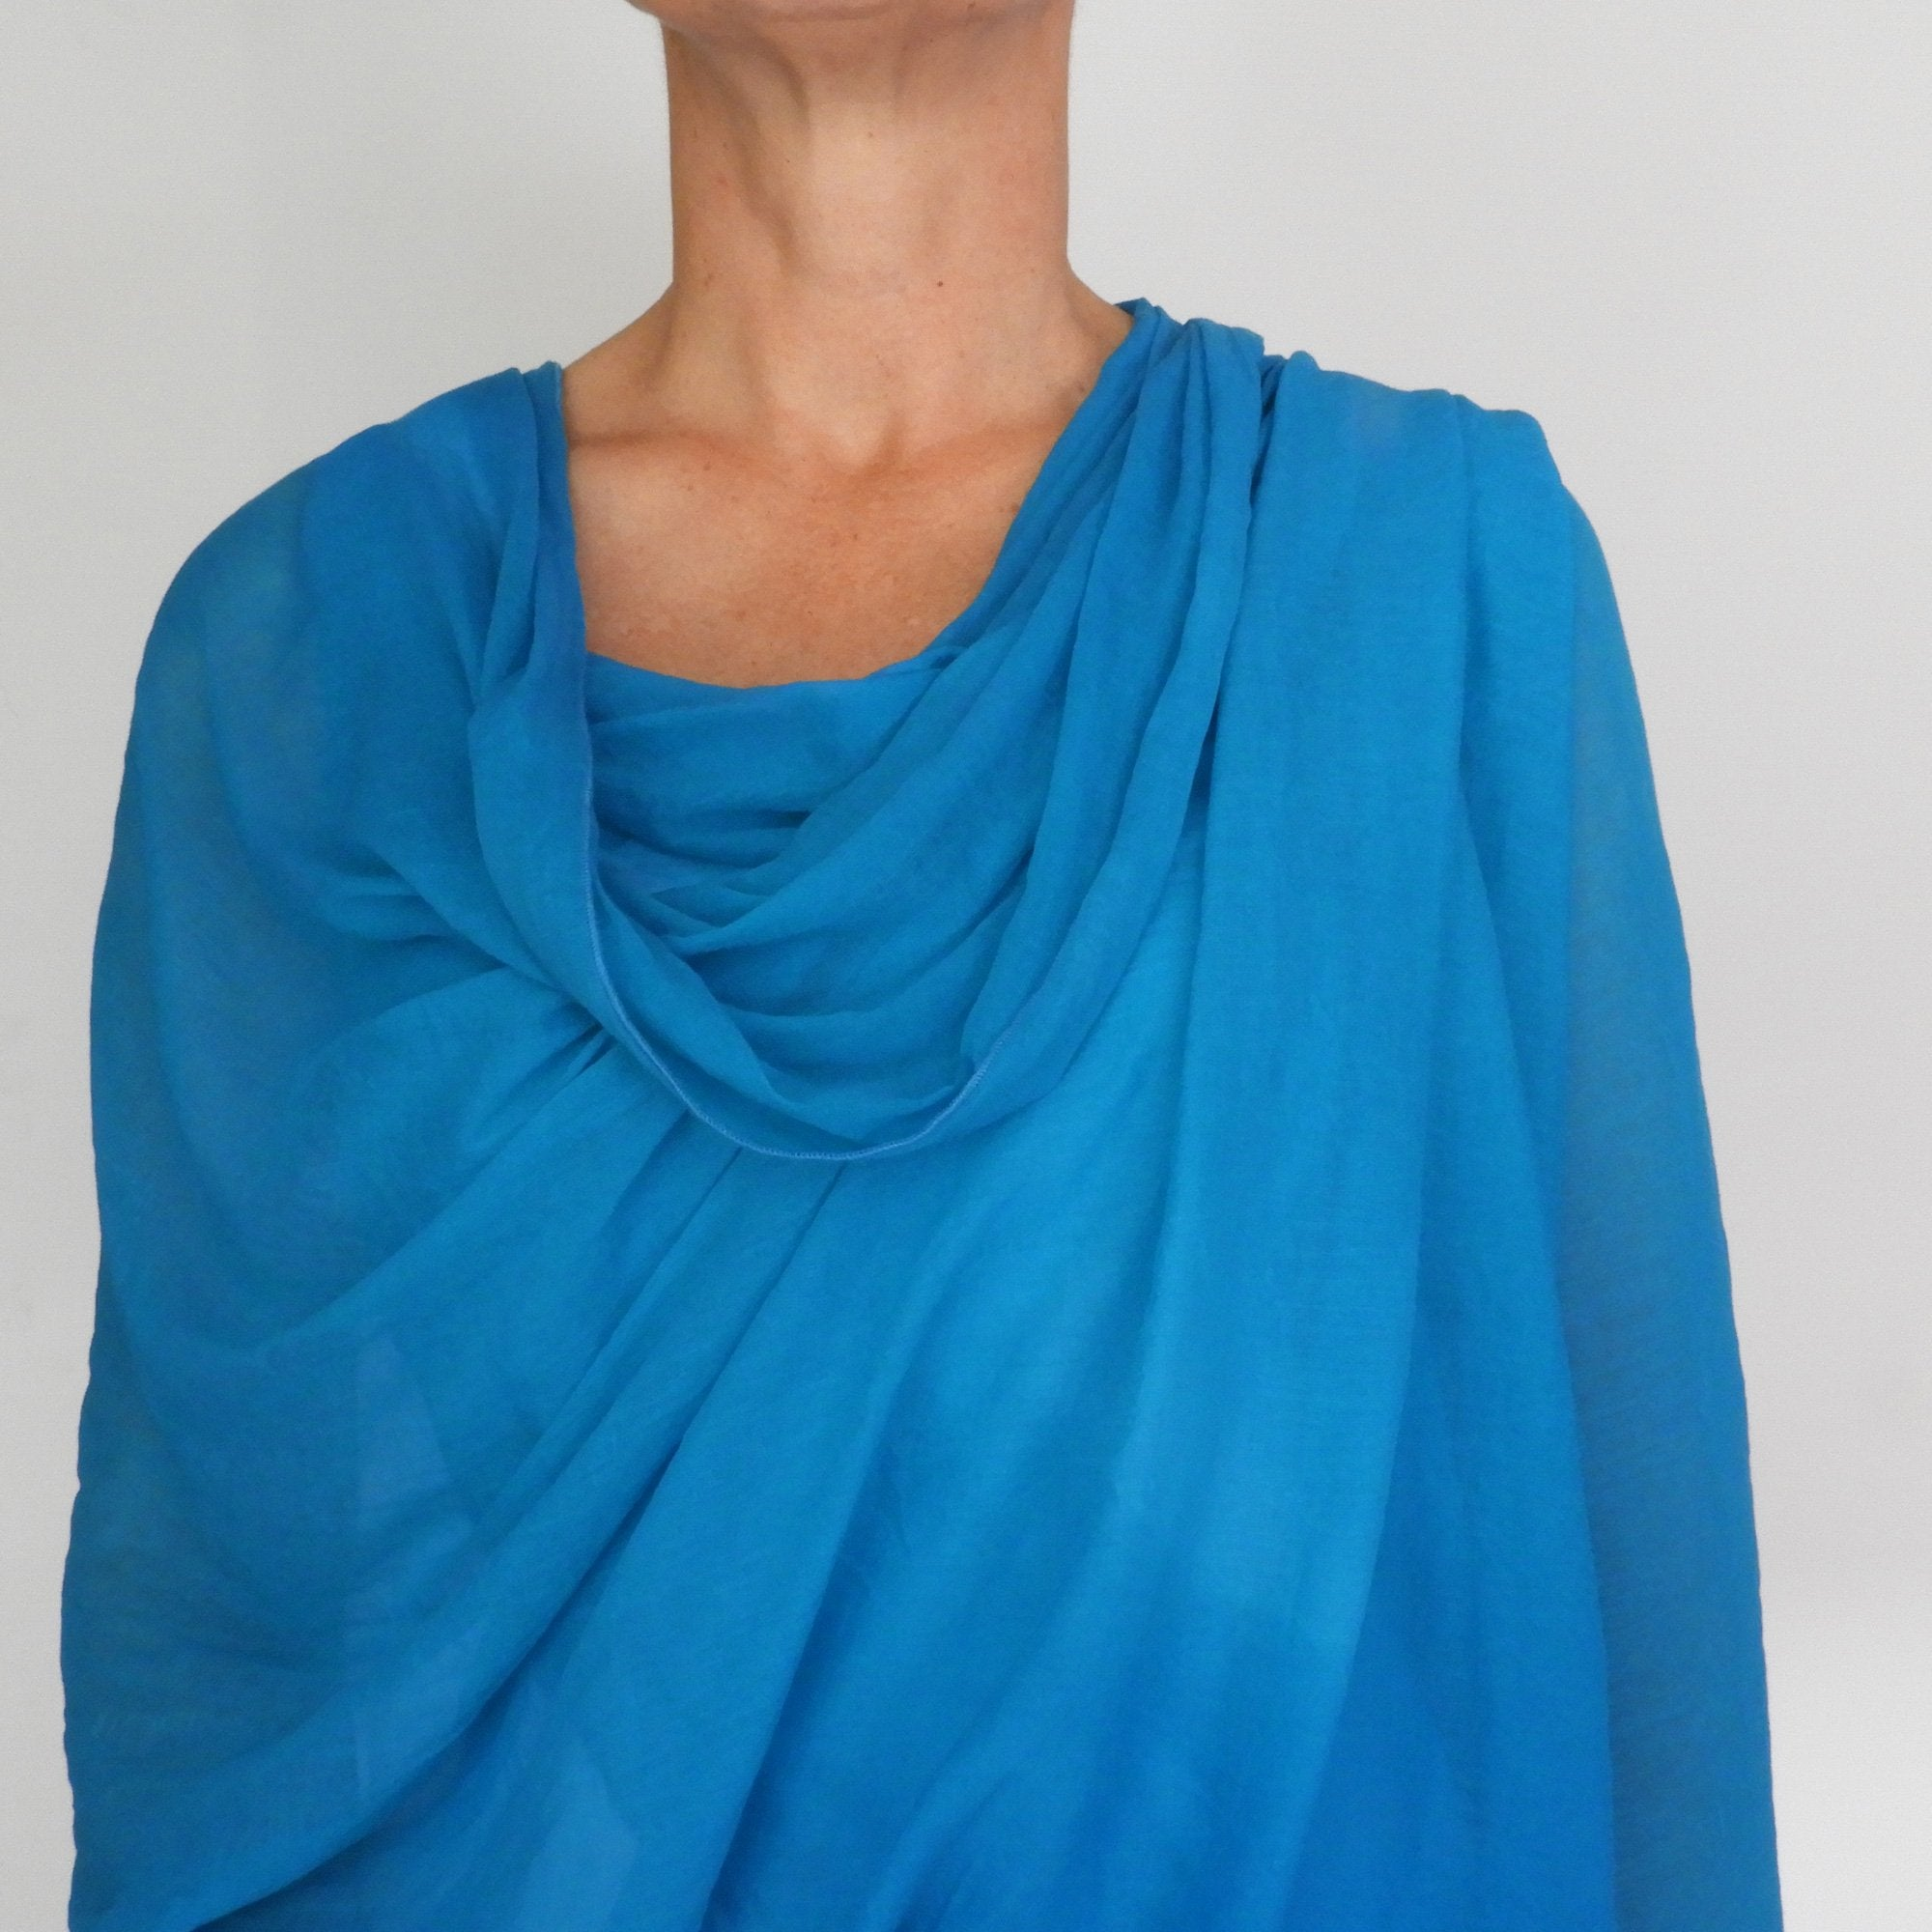 Sophie's turquoise wrap